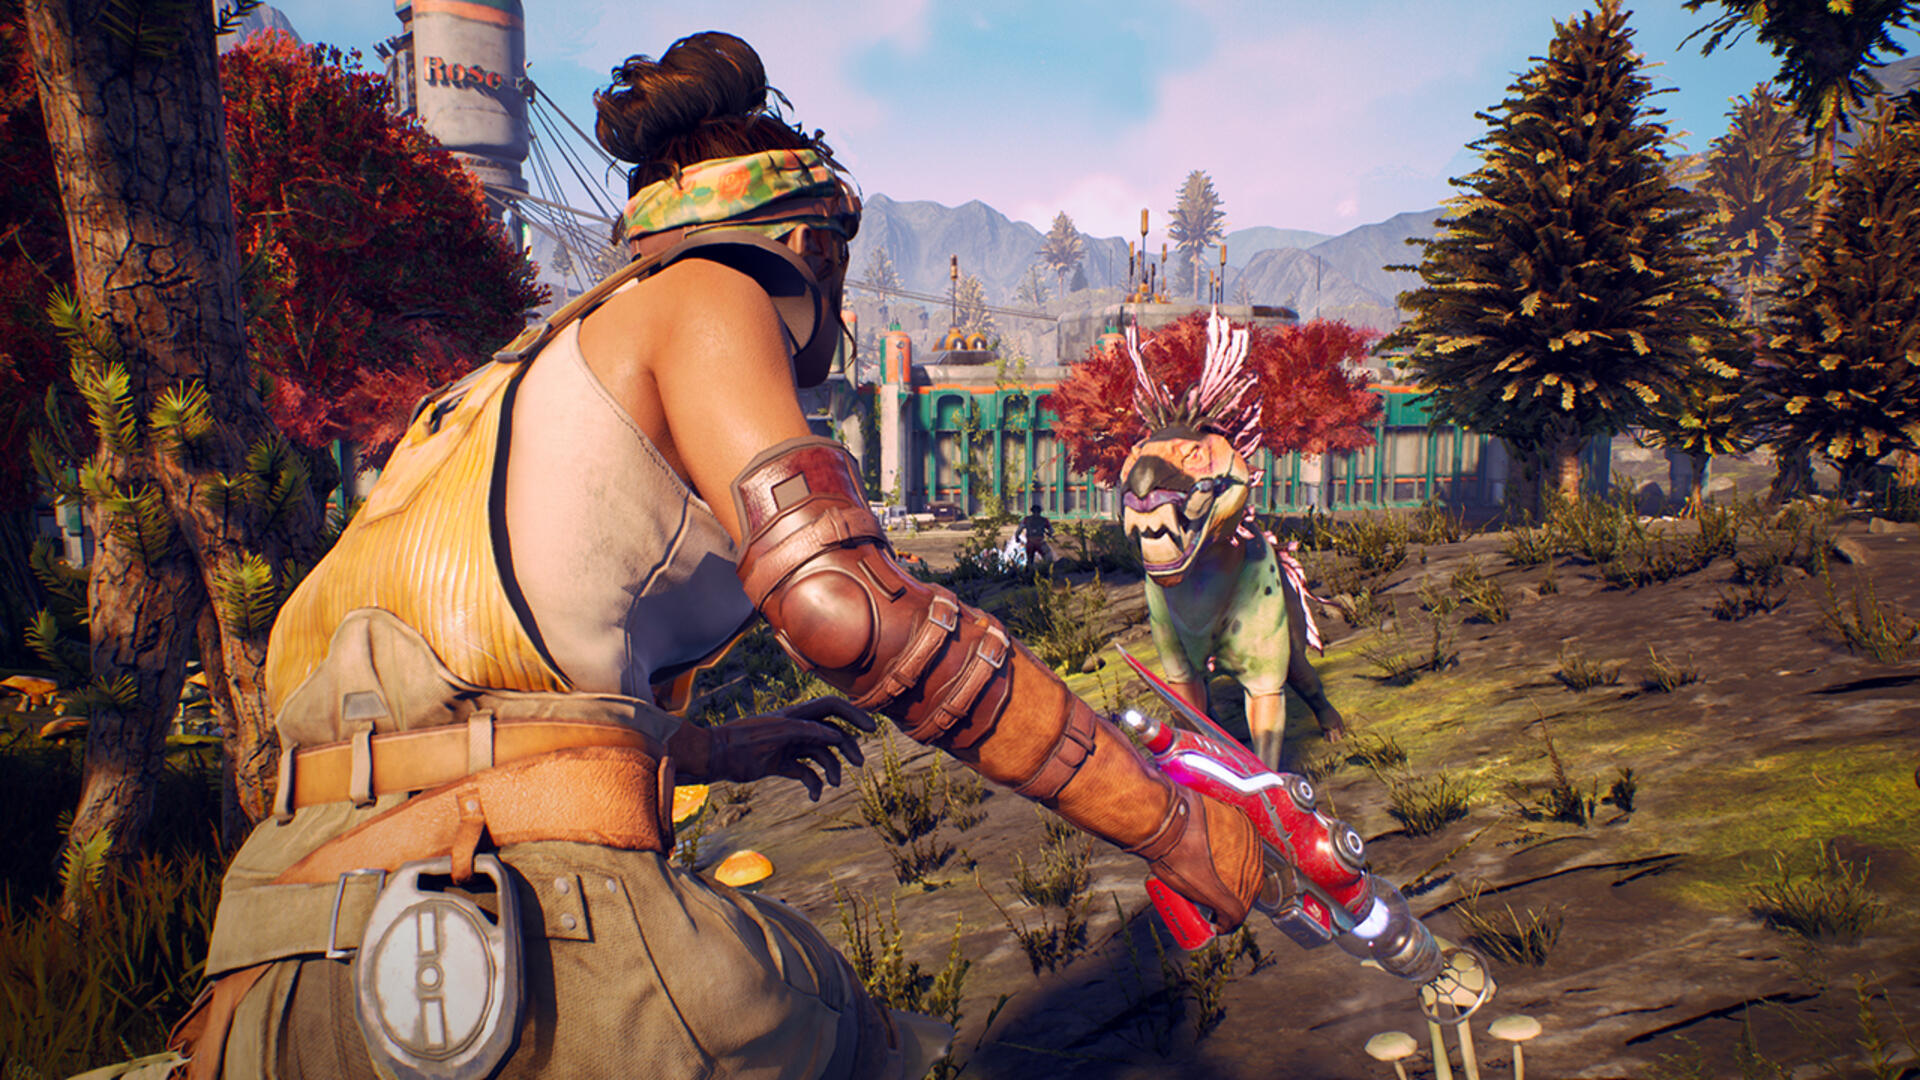 The Outer Worlds Hands-On: You Should Tap the Brakes Slightly on the